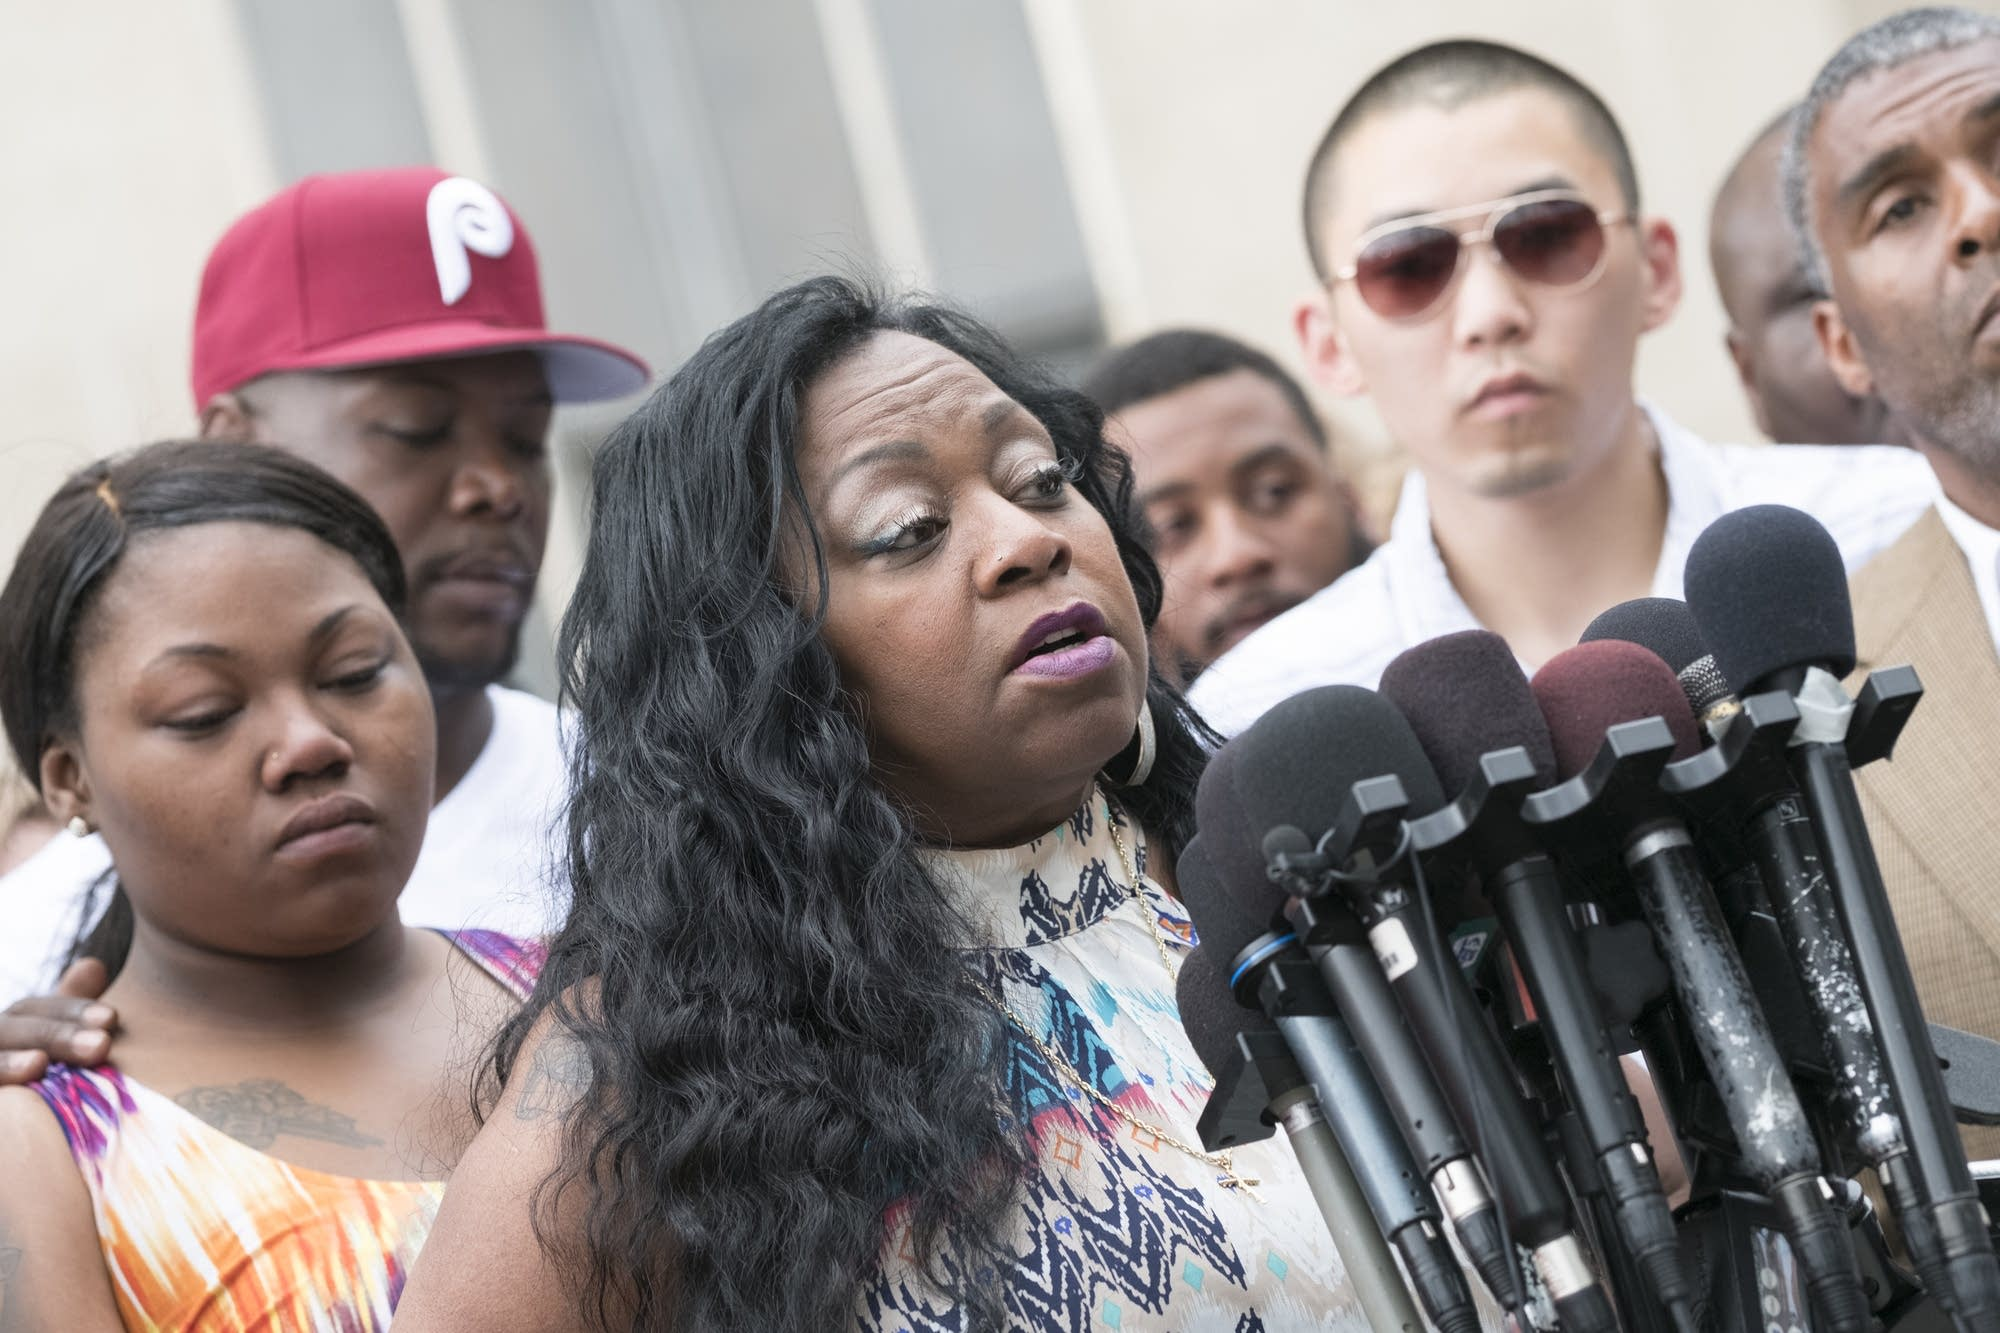 Valerie Castile mother of Philando Castile speaks